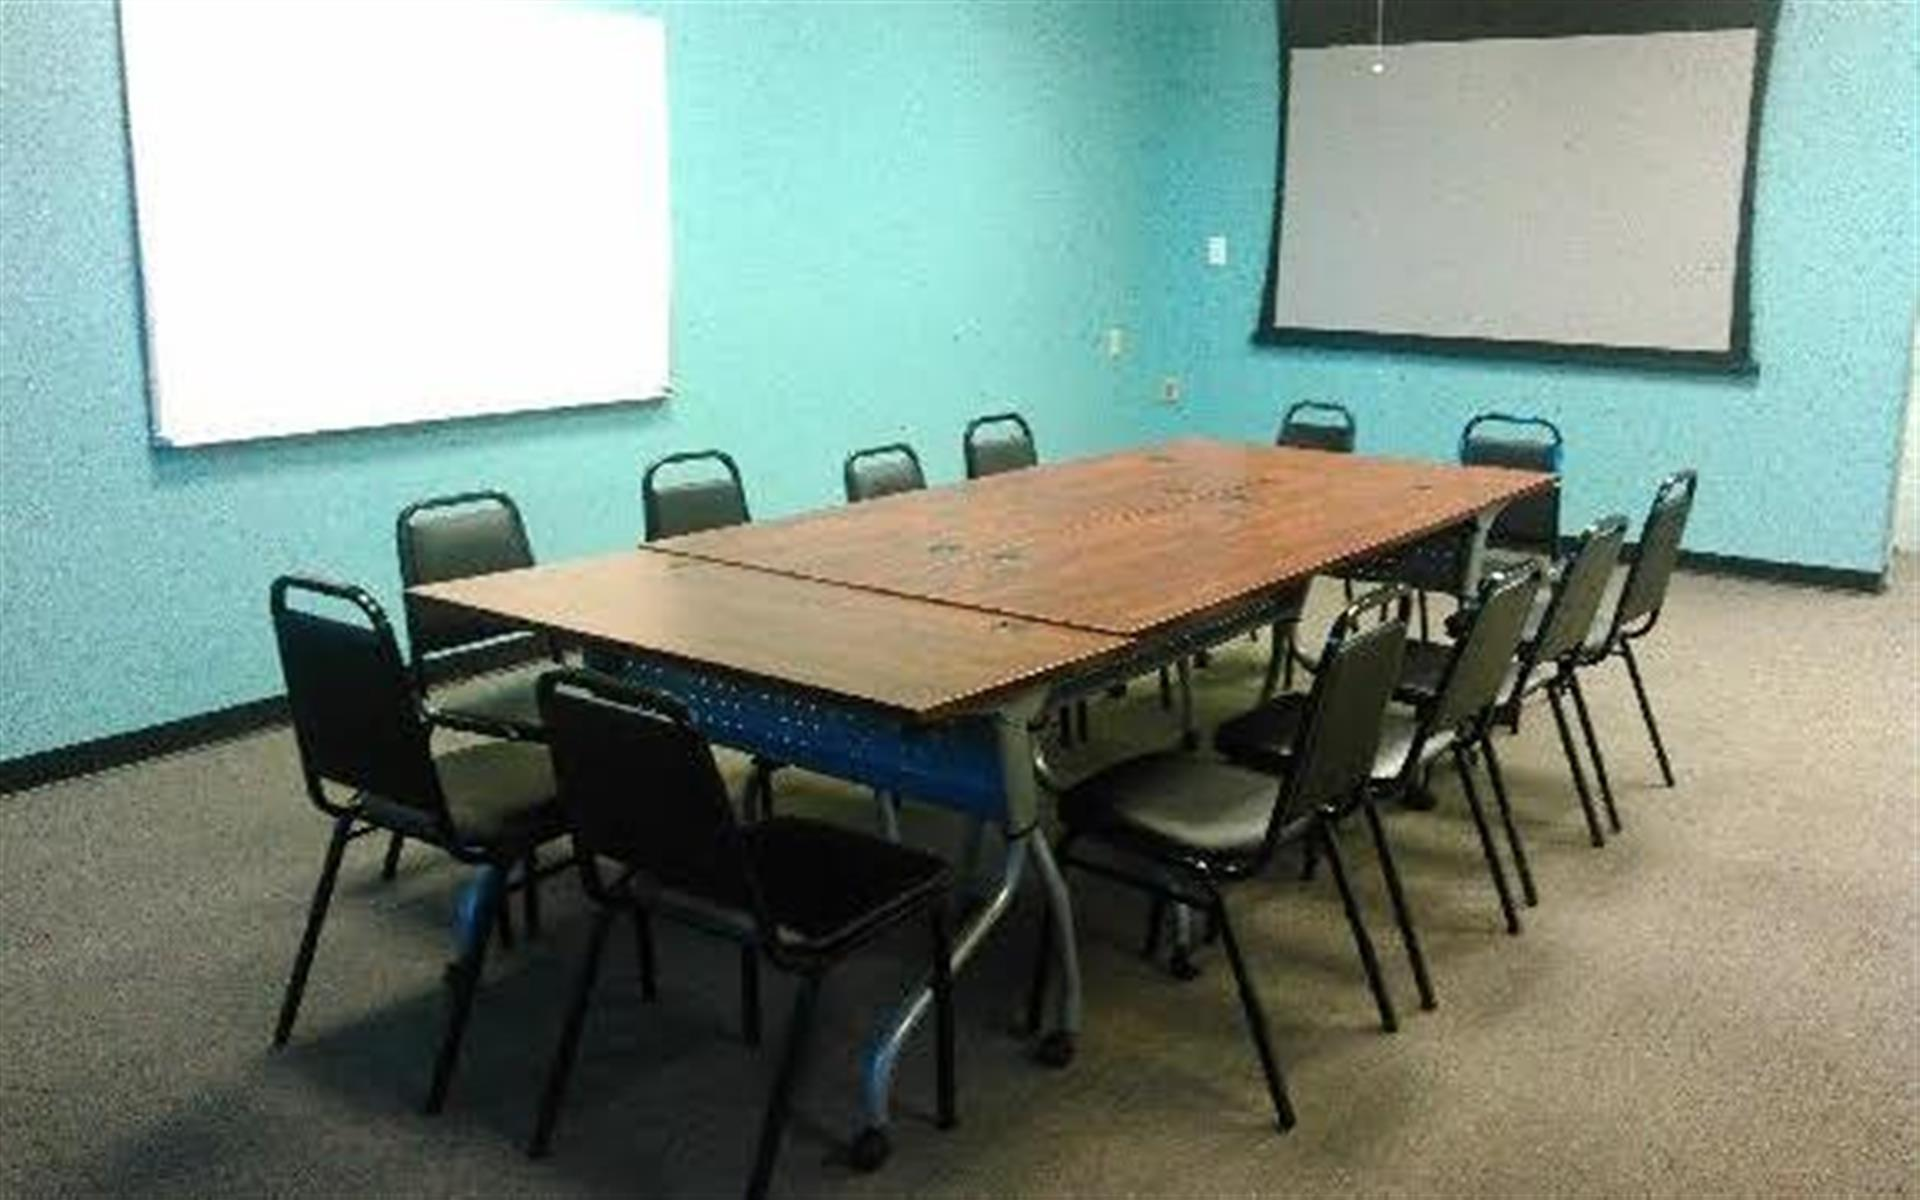 Pathways to Independence - Suite 102- Meeting Space